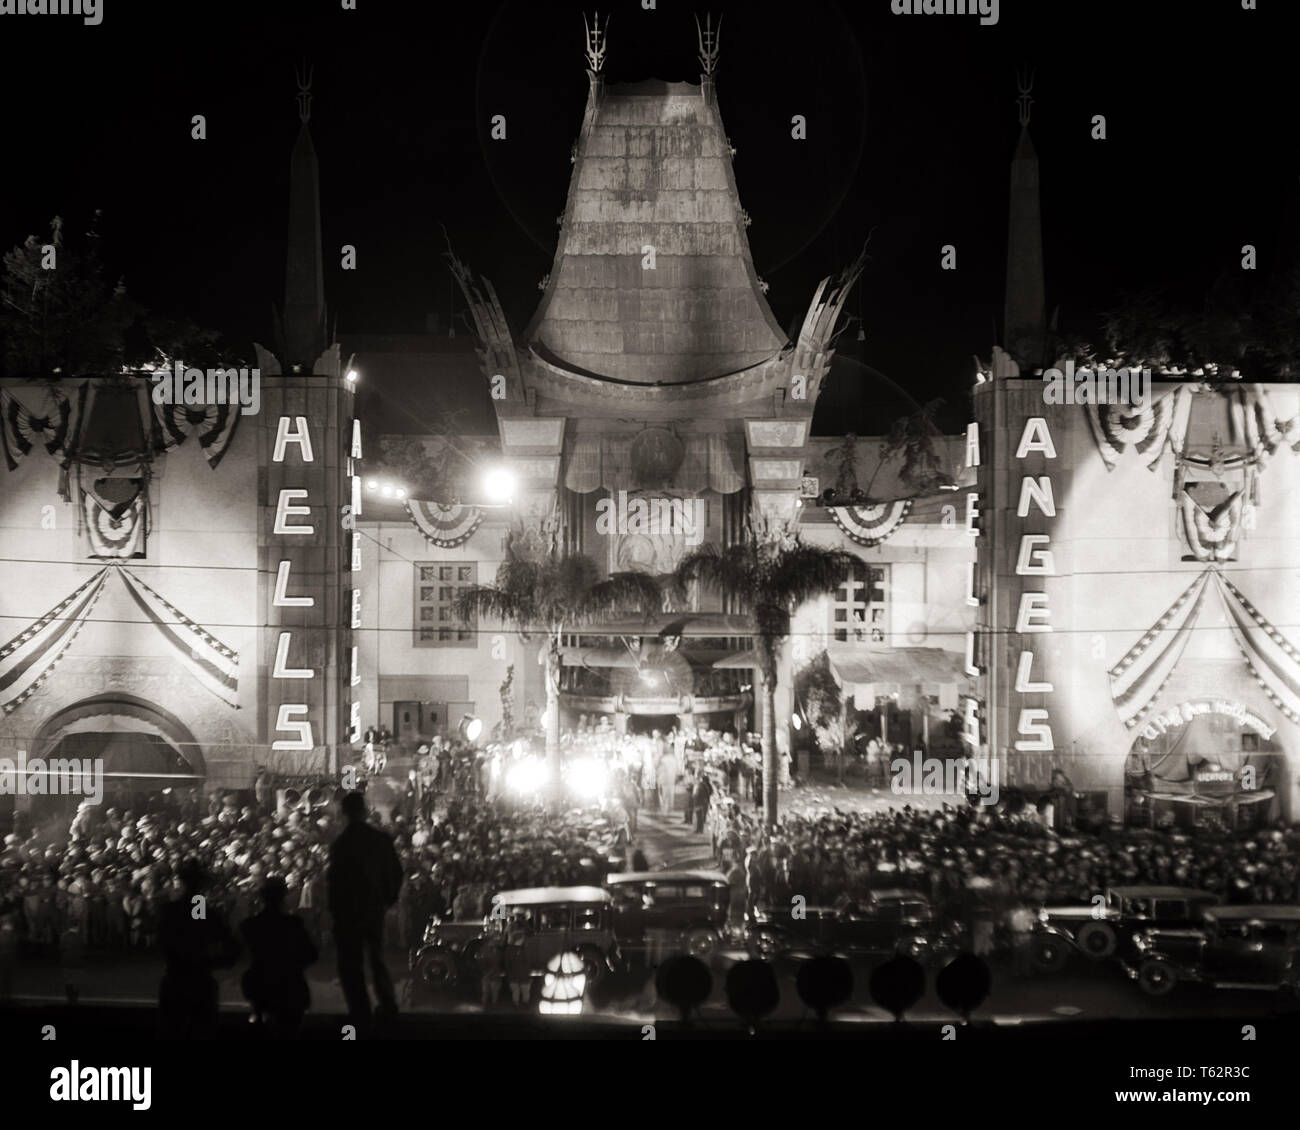 Hells Angels Usa Stock Photos & Hells Angels Usa Stock Images - Alamy